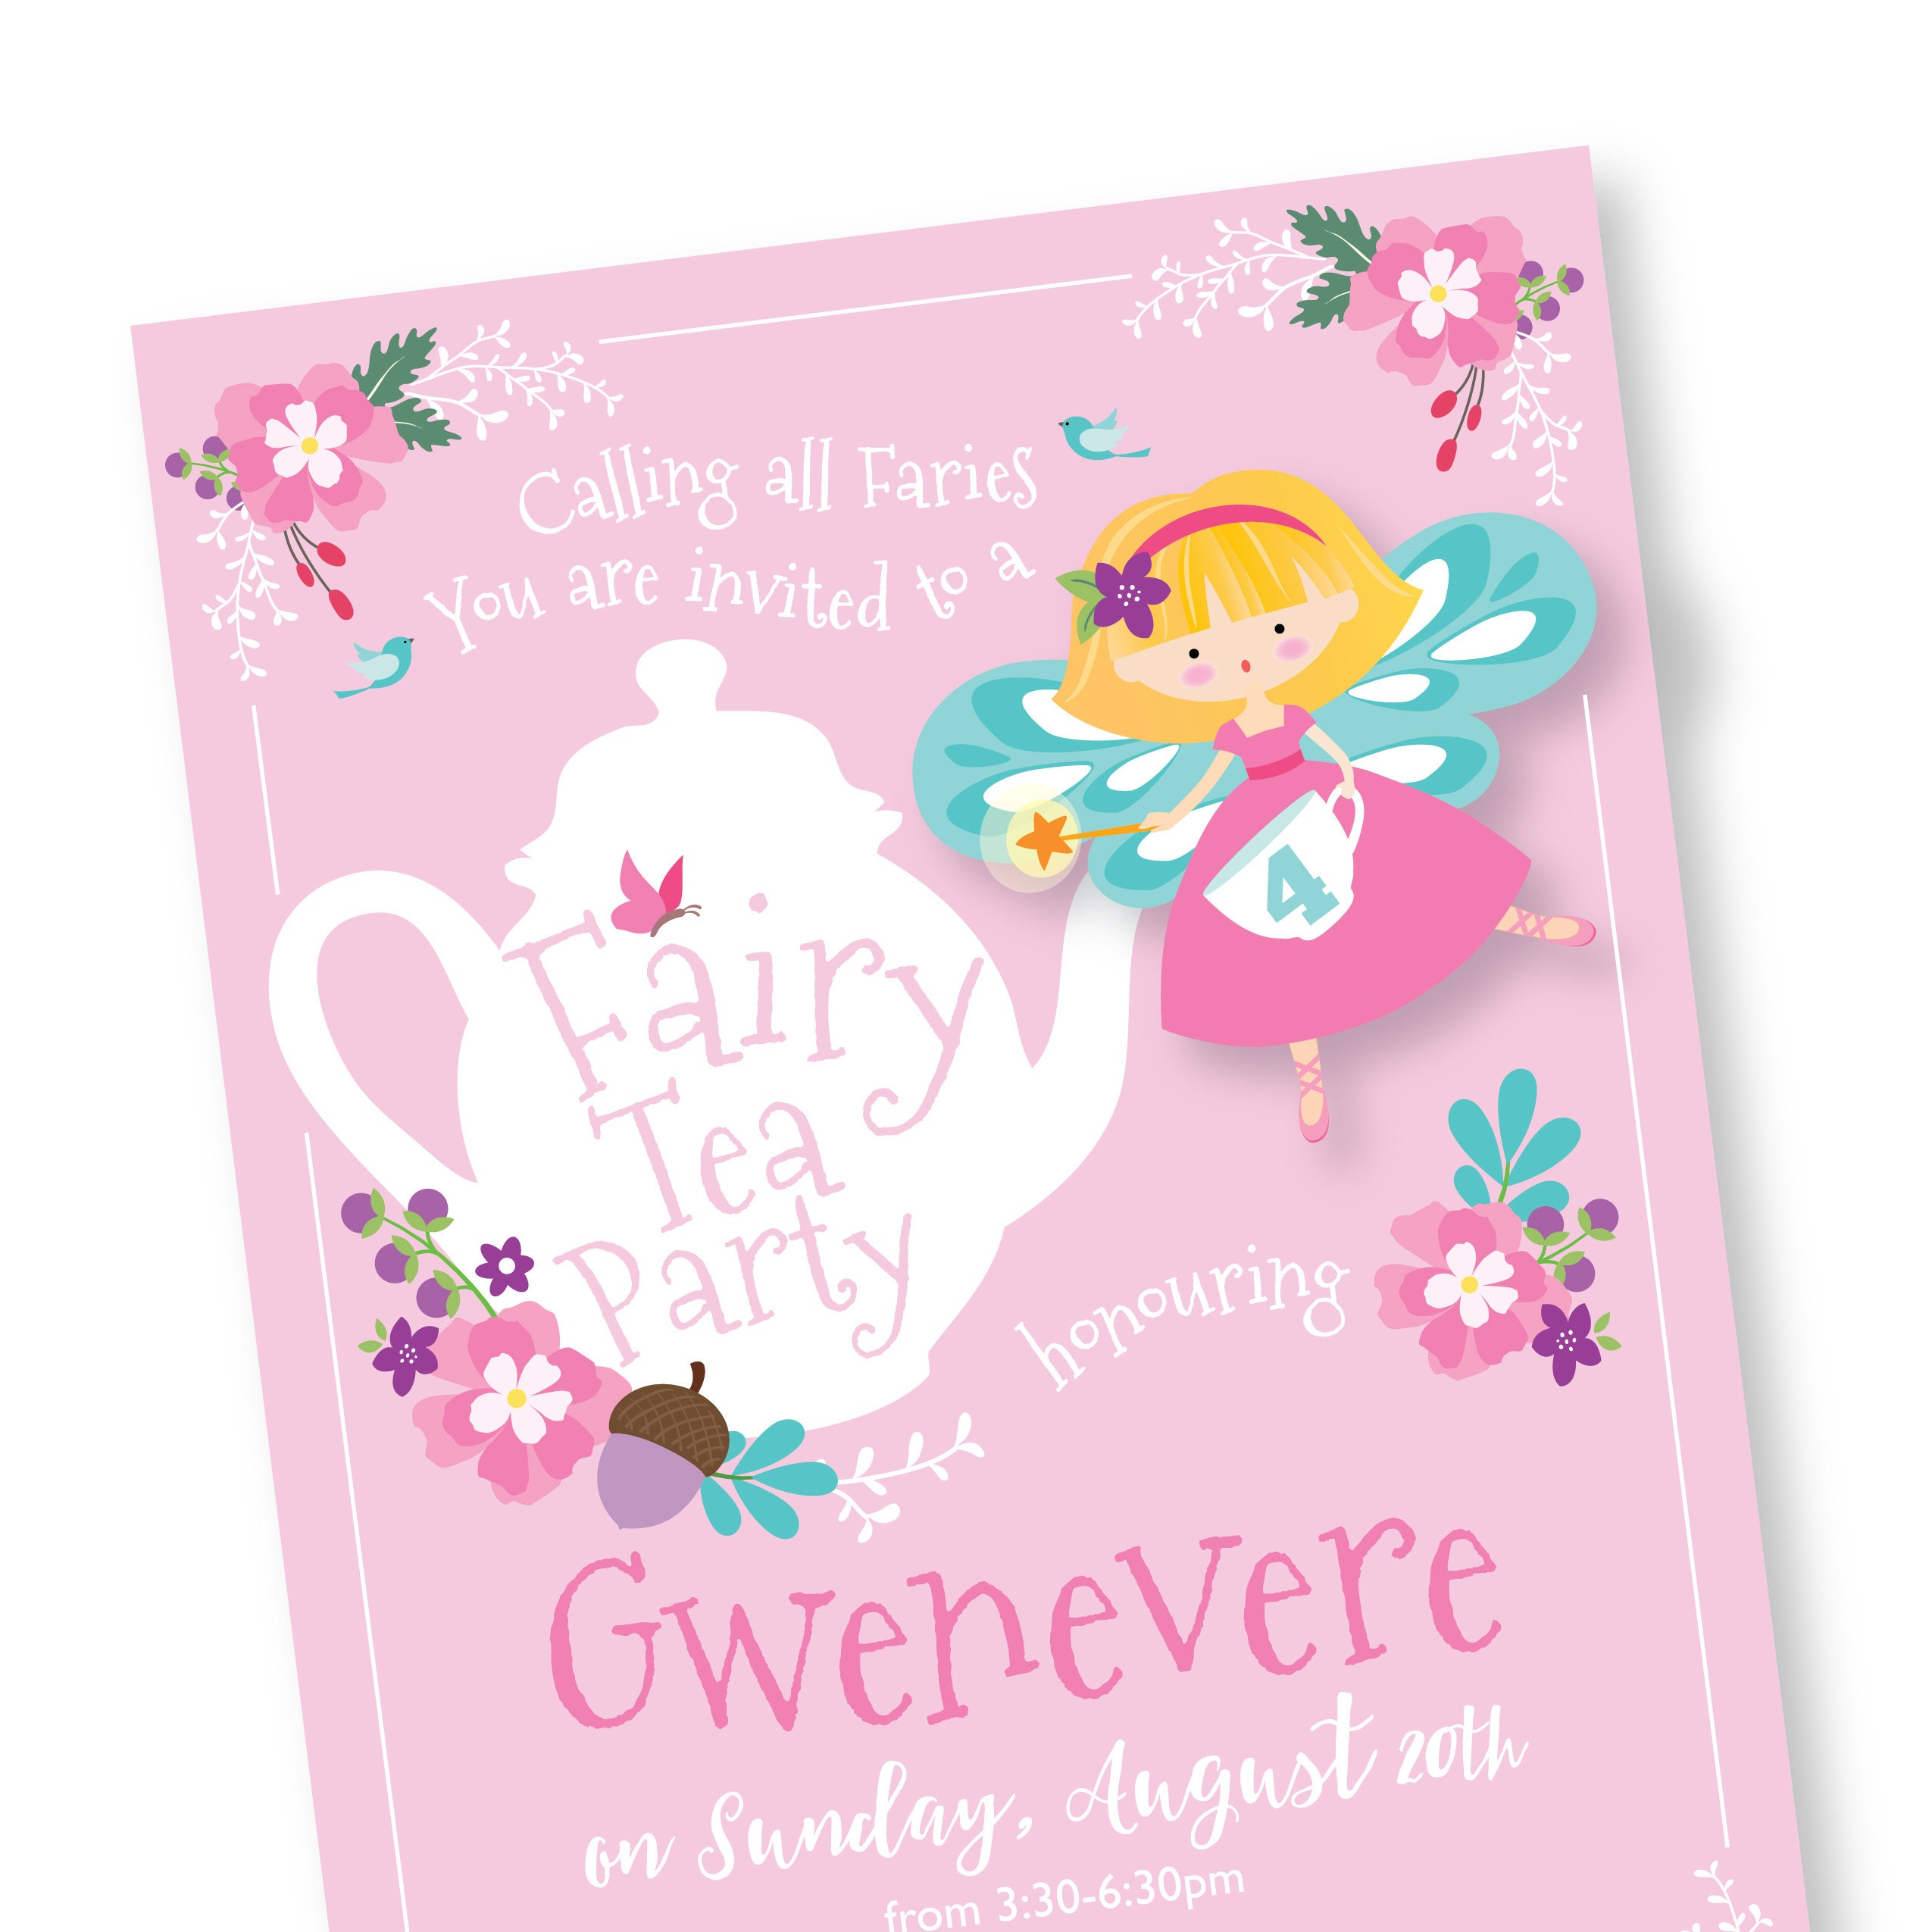 Fairy Tea Party Invitations wedding place cards cheap star wars – Fairy Tea Party Invitations